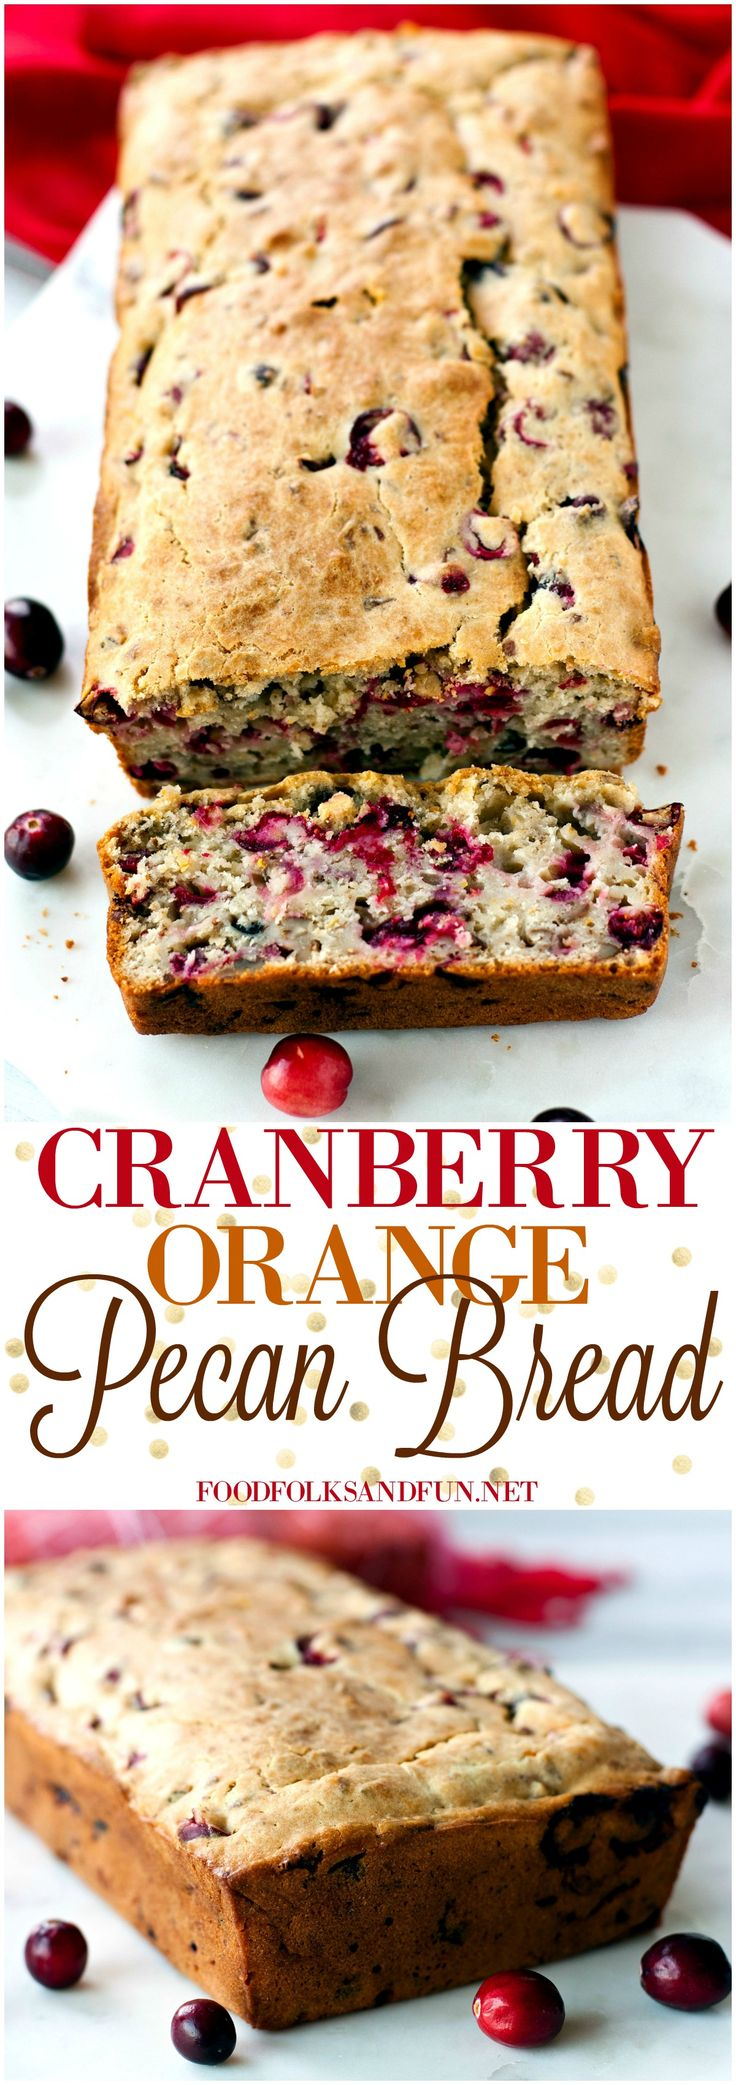 This is a great Cranberry Bread Recipe that's packed with orange flavor and pecans. Plus it makes 2 loaves! #SweetSwaps #CleverGirls [ad]